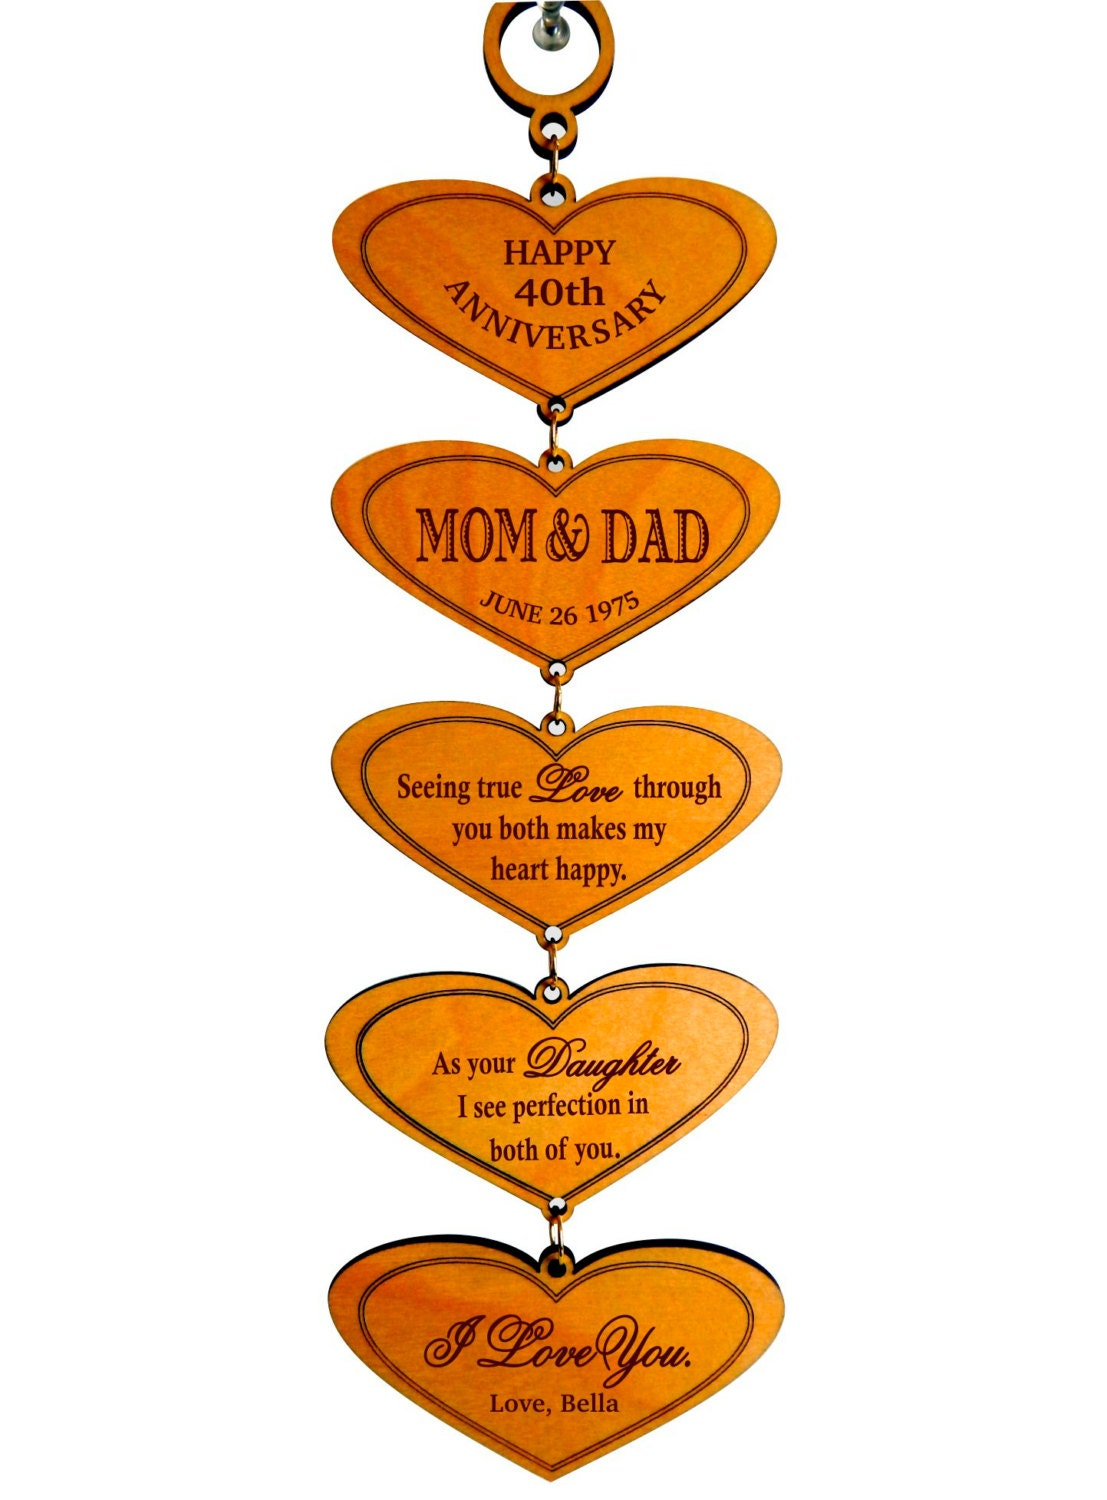 40th Wedding Anniversary Gifts For Mum And Dad : 40th Wedding Anniversary Gift for Mom and Dad from